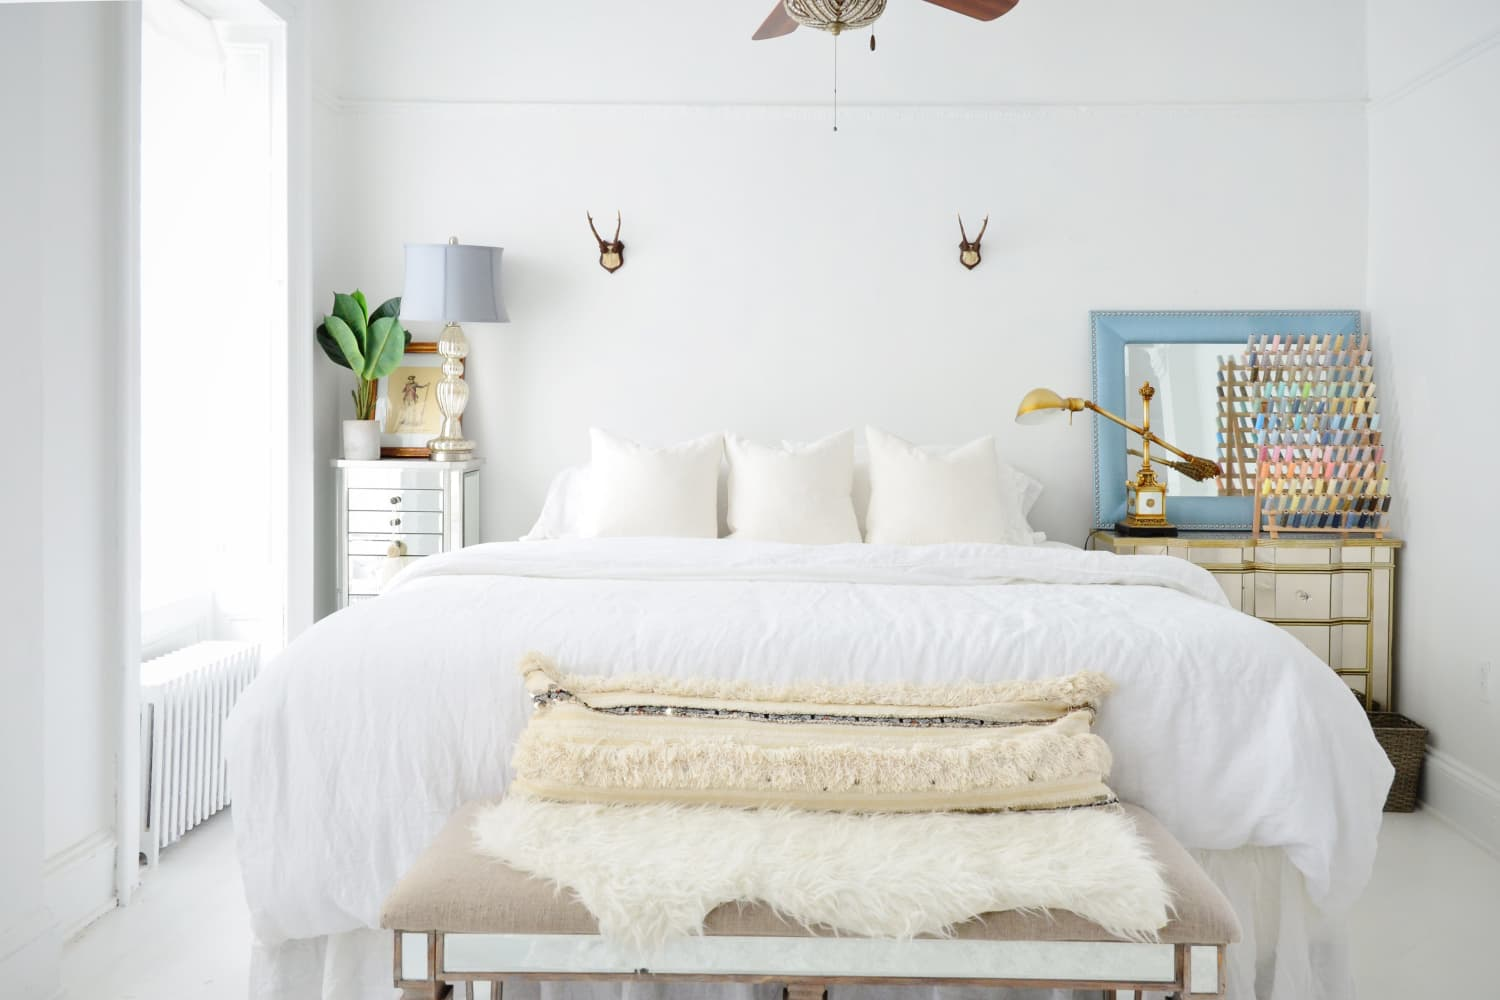 6 Tricks Home Stagers Use to Make Your Bedroom Feel Way Cozier